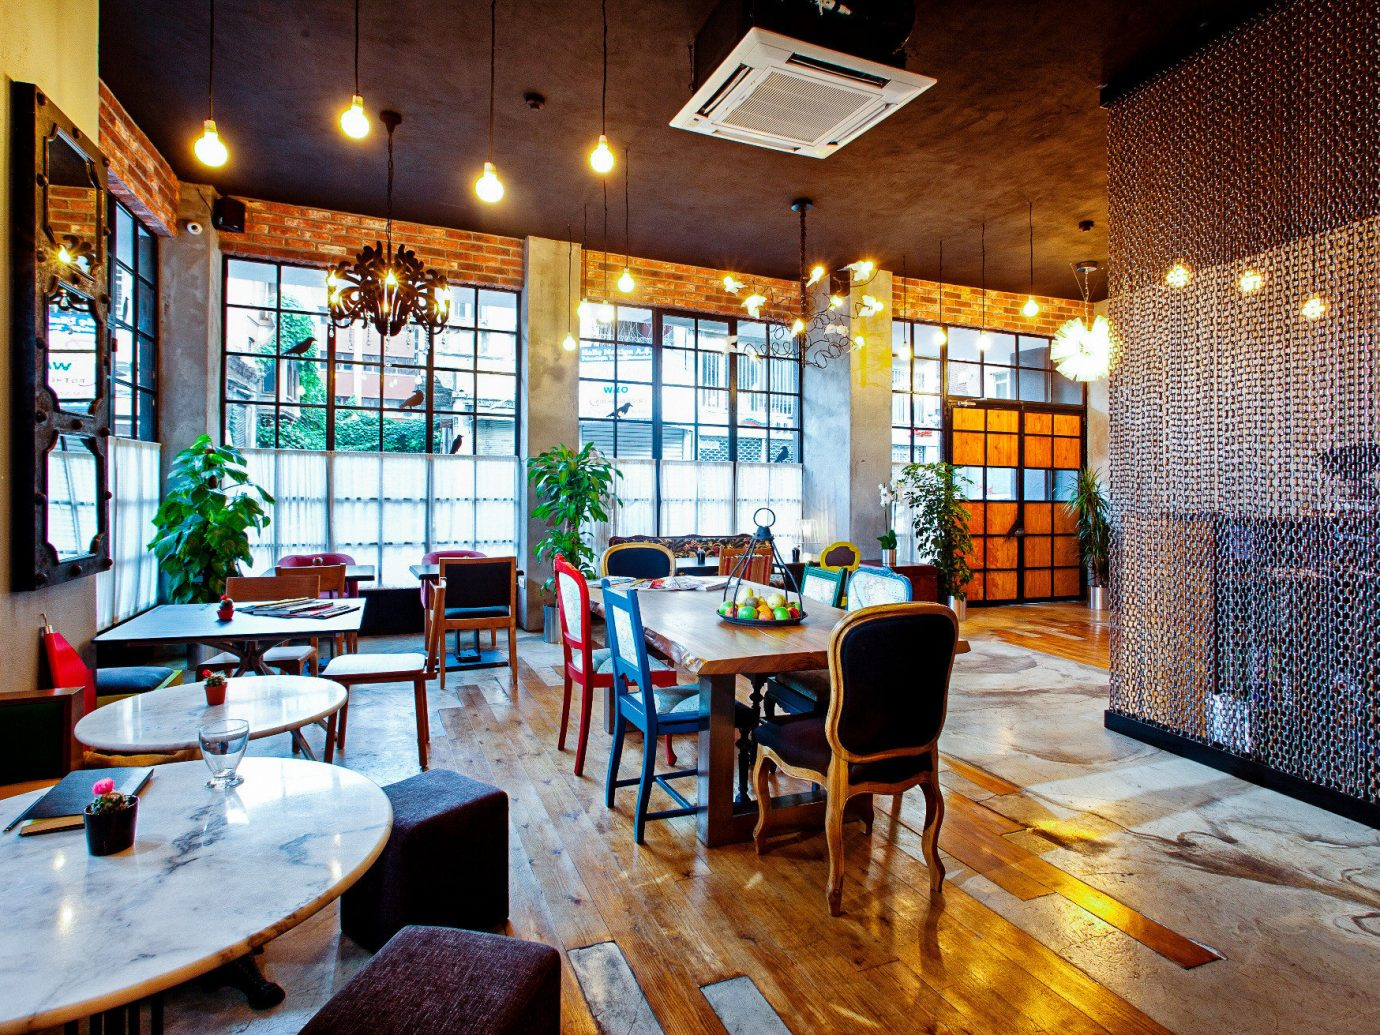 Boutique Hotels Hotels Luxury Travel indoor table ceiling room floor window Living restaurant interior design Dining real estate café furniture dining room Lobby area Bar dining table